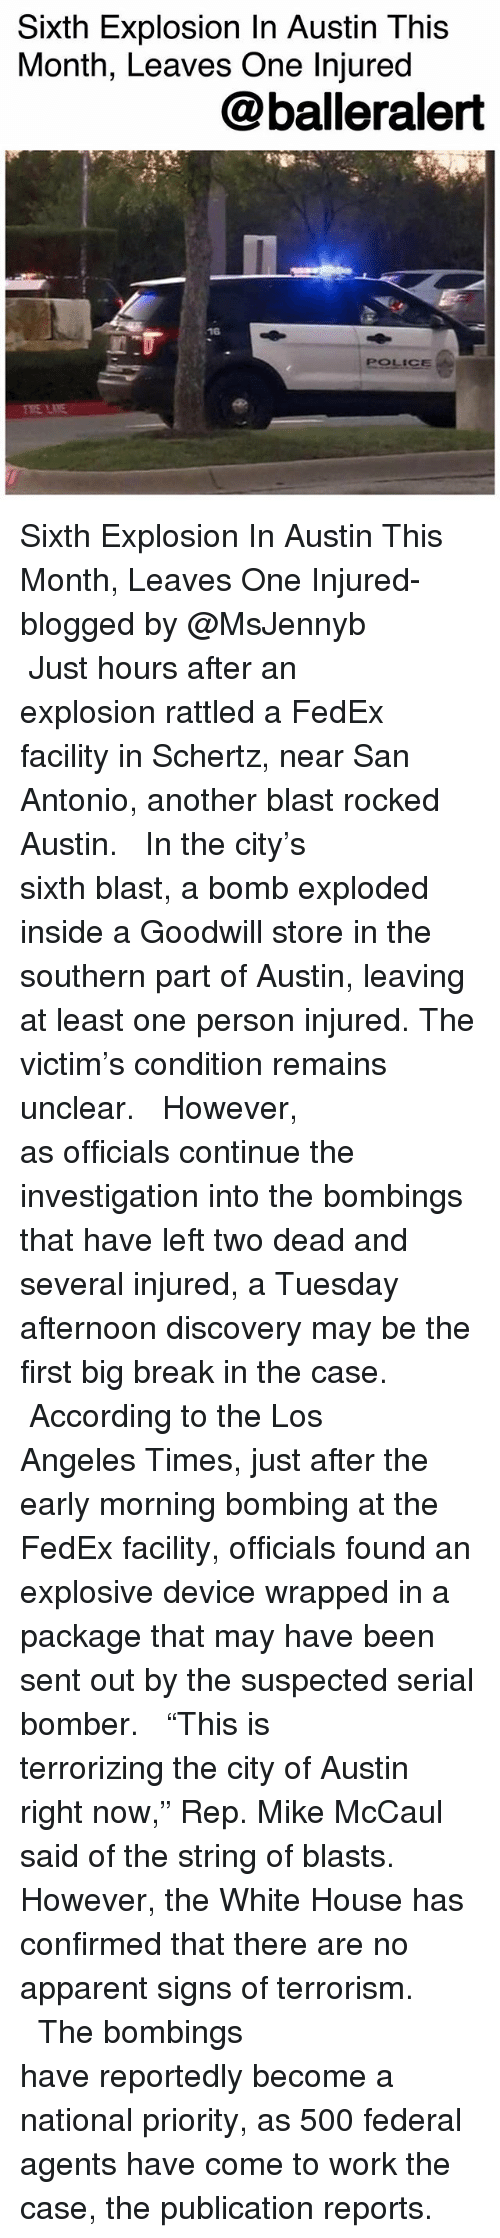 """Memes, Police, and White House: Sixth Explosion In Austin This  Month, Leaves One Injured  @balleralert  16  POLICE  RE LIE Sixth Explosion In Austin This Month, Leaves One Injured- blogged by @MsJennyb ⠀⠀⠀⠀⠀⠀⠀⠀⠀ ⠀⠀⠀⠀⠀⠀⠀⠀⠀ Just hours after an explosion rattled a FedEx facility in Schertz, near San Antonio, another blast rocked Austin. ⠀⠀⠀⠀⠀⠀⠀⠀⠀ ⠀⠀⠀⠀⠀⠀⠀⠀⠀ In the city's sixth blast, a bomb exploded inside a Goodwill store in the southern part of Austin, leaving at least one person injured. The victim's condition remains unclear. ⠀⠀⠀⠀⠀⠀⠀⠀⠀ ⠀⠀⠀⠀⠀⠀⠀⠀⠀ However, as officials continue the investigation into the bombings that have left two dead and several injured, a Tuesday afternoon discovery may be the first big break in the case. ⠀⠀⠀⠀⠀⠀⠀⠀⠀ ⠀⠀⠀⠀⠀⠀⠀⠀⠀ According to the Los Angeles Times, just after the early morning bombing at the FedEx facility, officials found an explosive device wrapped in a package that may have been sent out by the suspected serial bomber. ⠀⠀⠀⠀⠀⠀⠀⠀⠀ ⠀⠀⠀⠀⠀⠀⠀⠀⠀ """"This is terrorizing the city of Austin right now,"""" Rep. Mike McCaul said of the string of blasts. However, the White House has confirmed that there are no apparent signs of terrorism. ⠀⠀⠀⠀⠀⠀⠀⠀⠀ ⠀⠀⠀⠀⠀⠀⠀⠀⠀ The bombings have reportedly become a national priority, as 500 federal agents have come to work the case, the publication reports."""